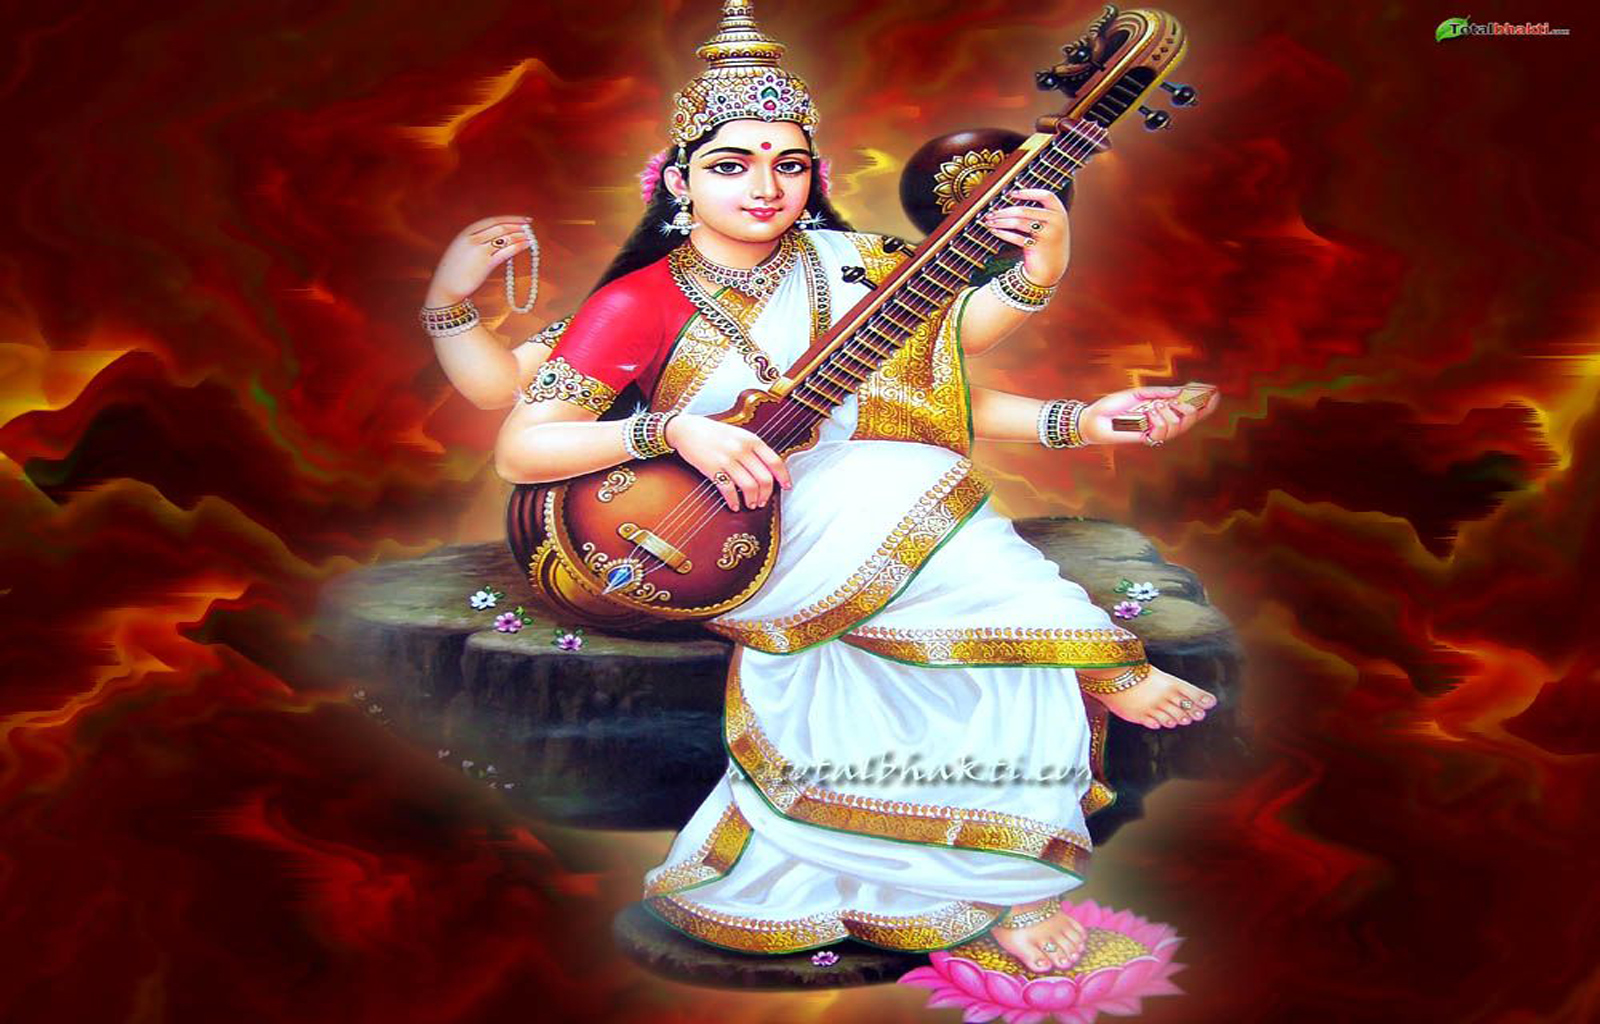 Saibaba Latest Hd Wallpapers Bhagwan Ji Help Me Saraswati Aata Pics Photos And Wallpaper